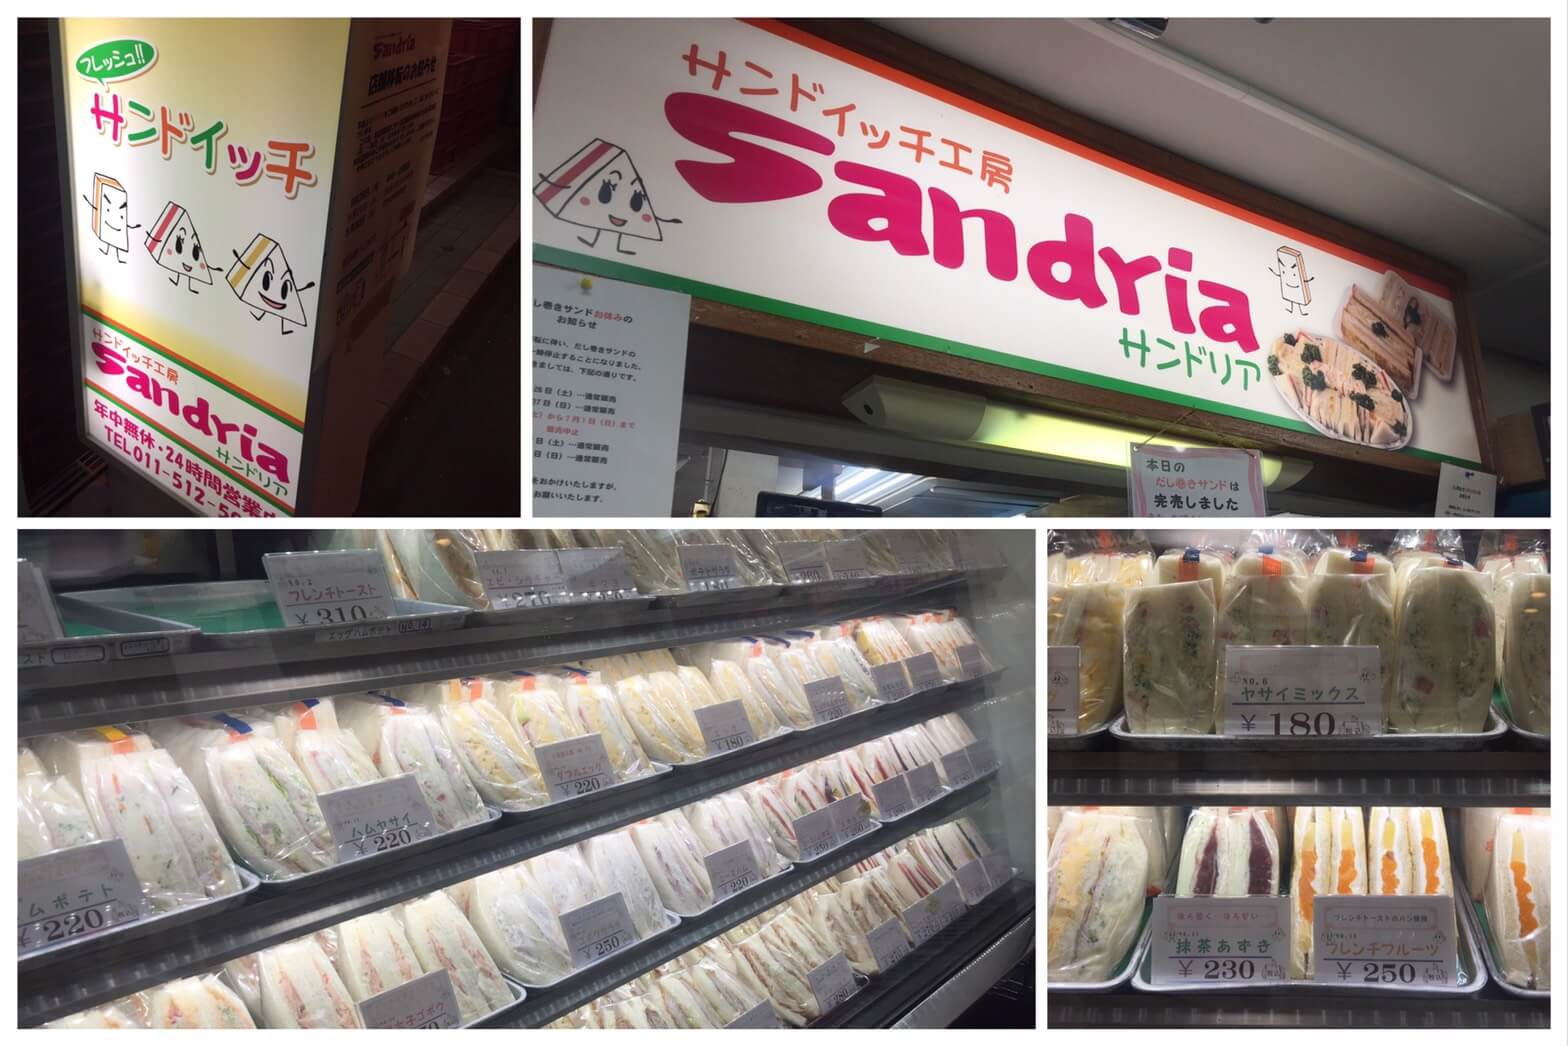 Sandwich Workshop Sandria